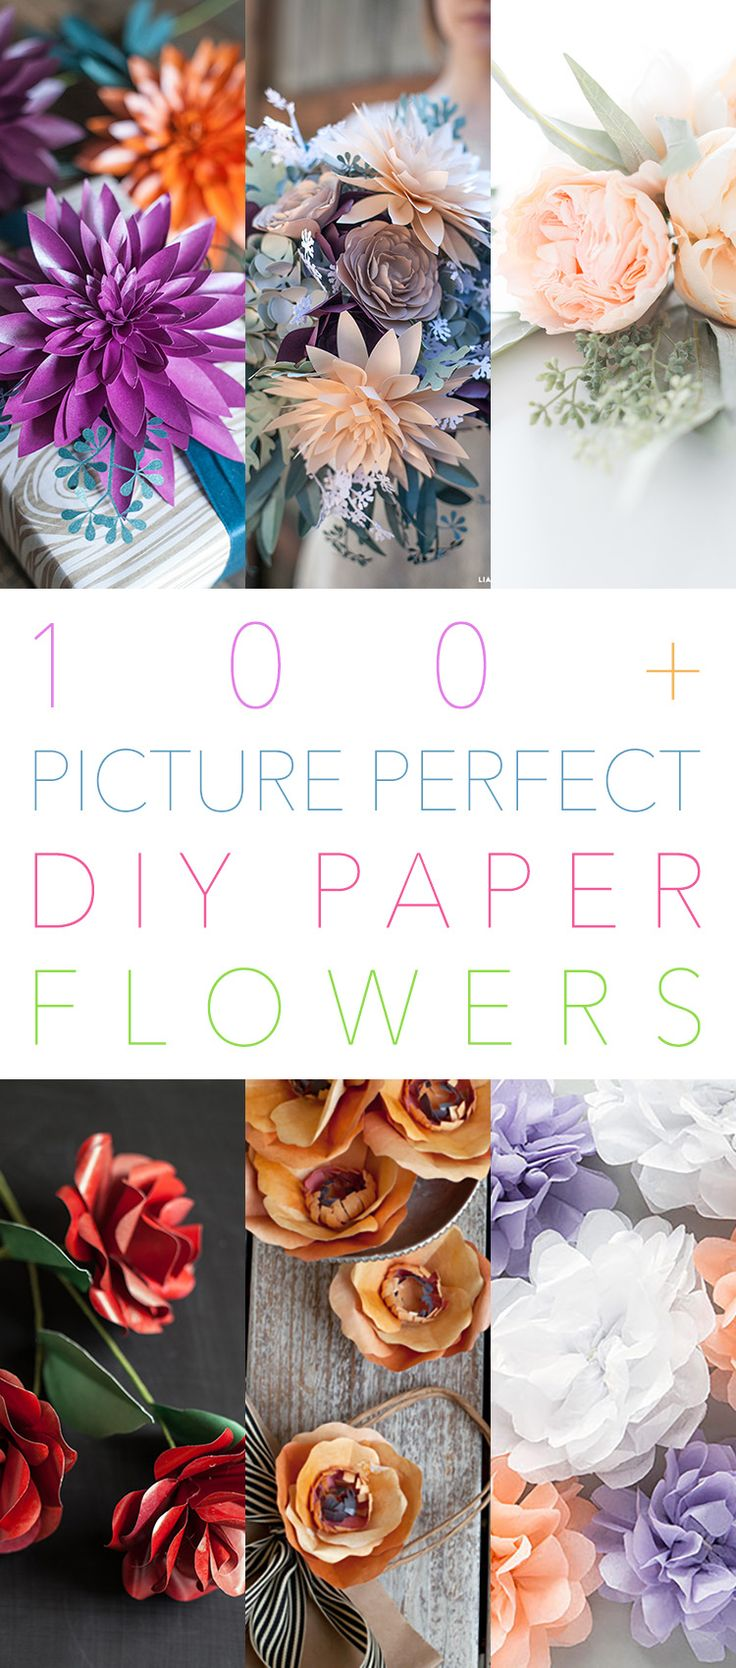 100+ Picture Perfect DIY Paper Flowers...perfect for all crafts...weddings...parties or just for fun!  A huge selection!